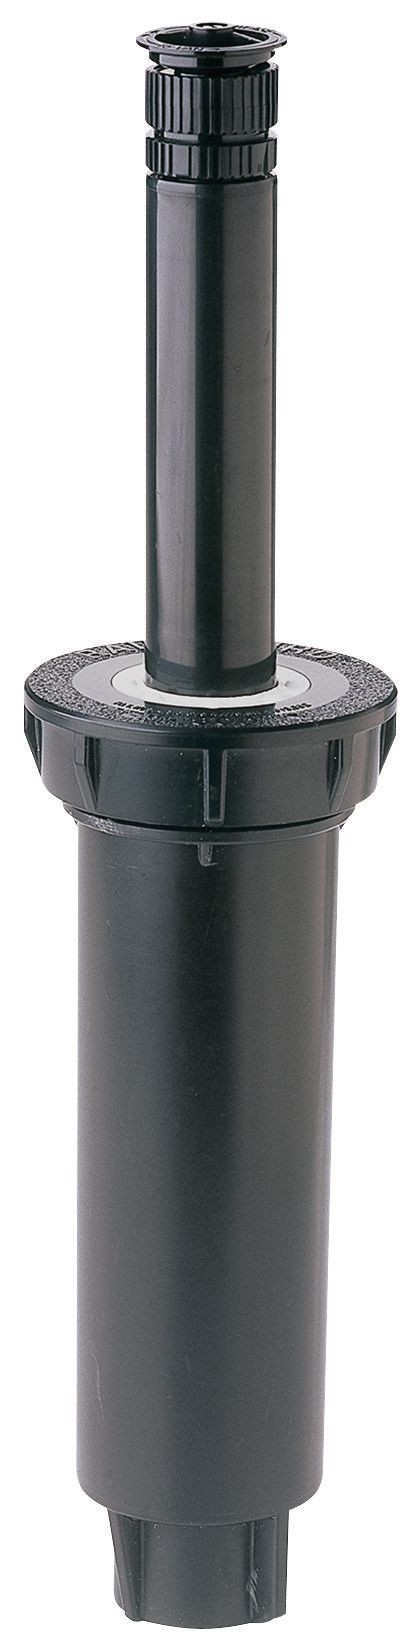 Rain Bird 1804van Spray Head Sprinkler, 1/2 In Fnpt, 0 5 Gpm